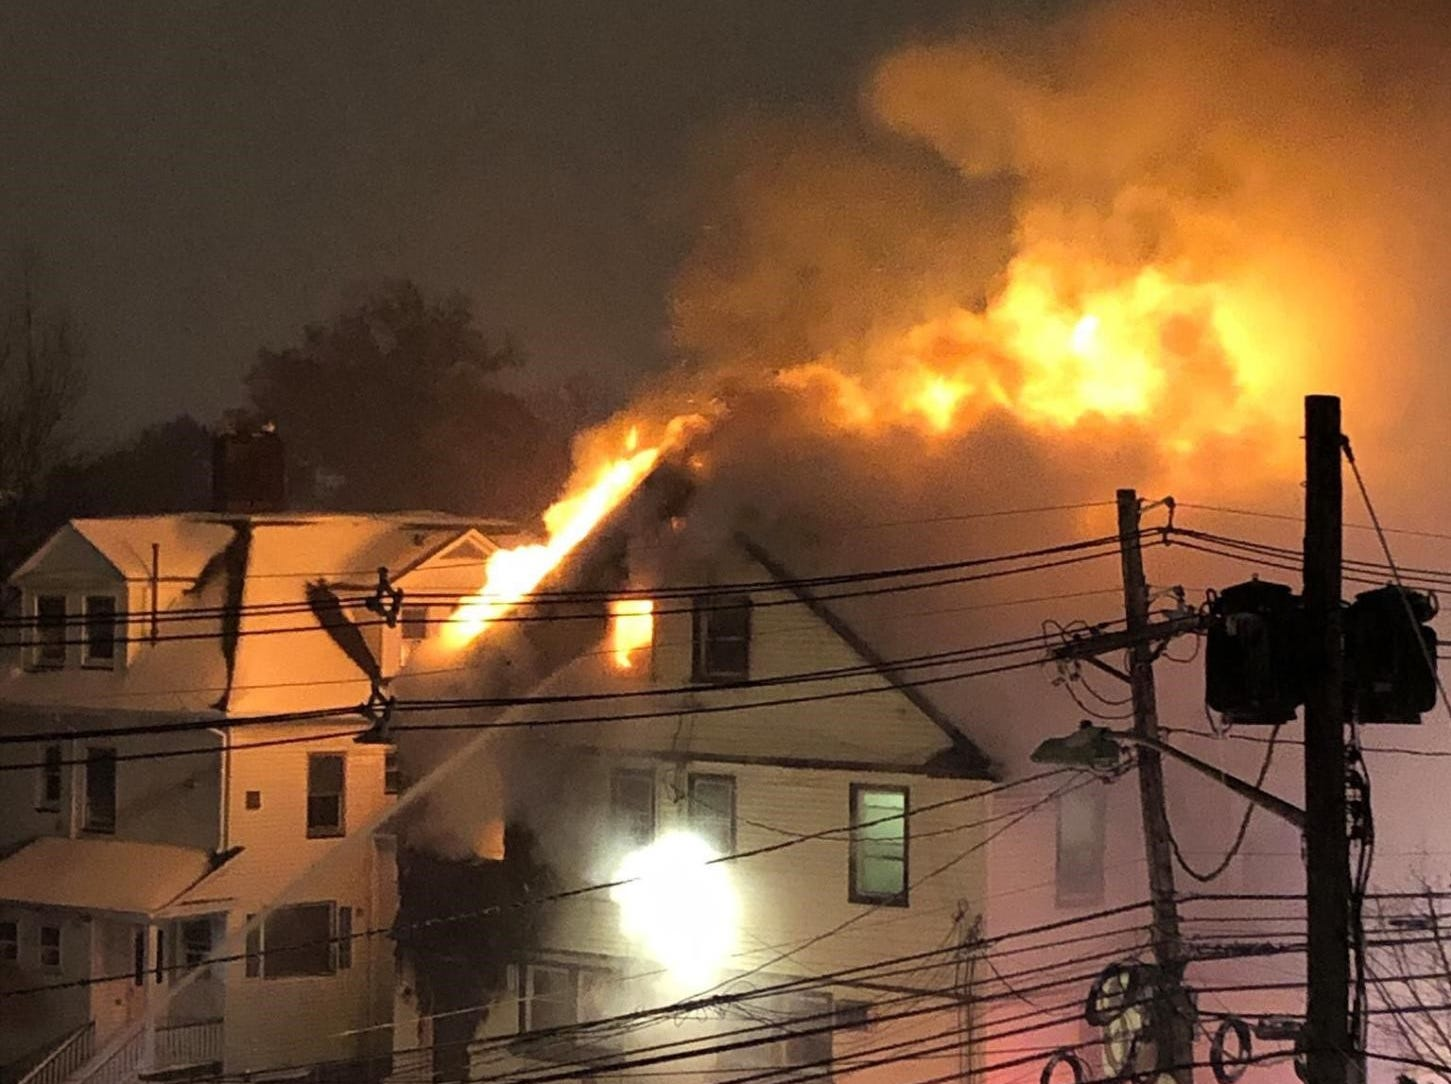 A fire gutted a rooming house on Valley Road and Walnut Street in Montclair on November 15, 2018.